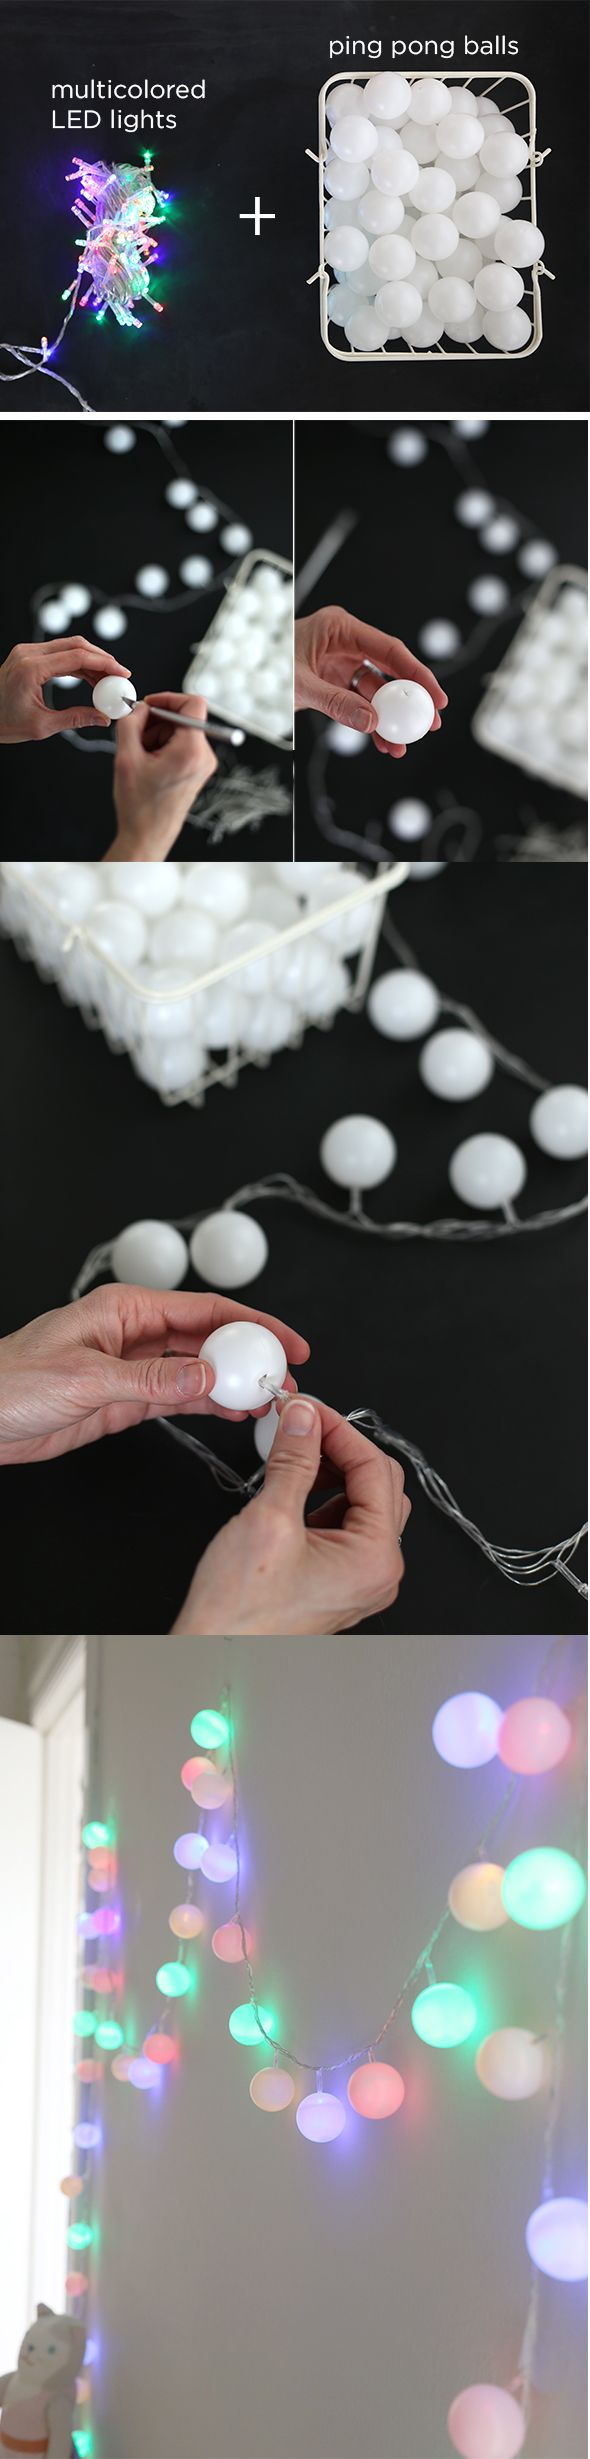 39 dollar glasses code DIY ping pong ball cafe lights